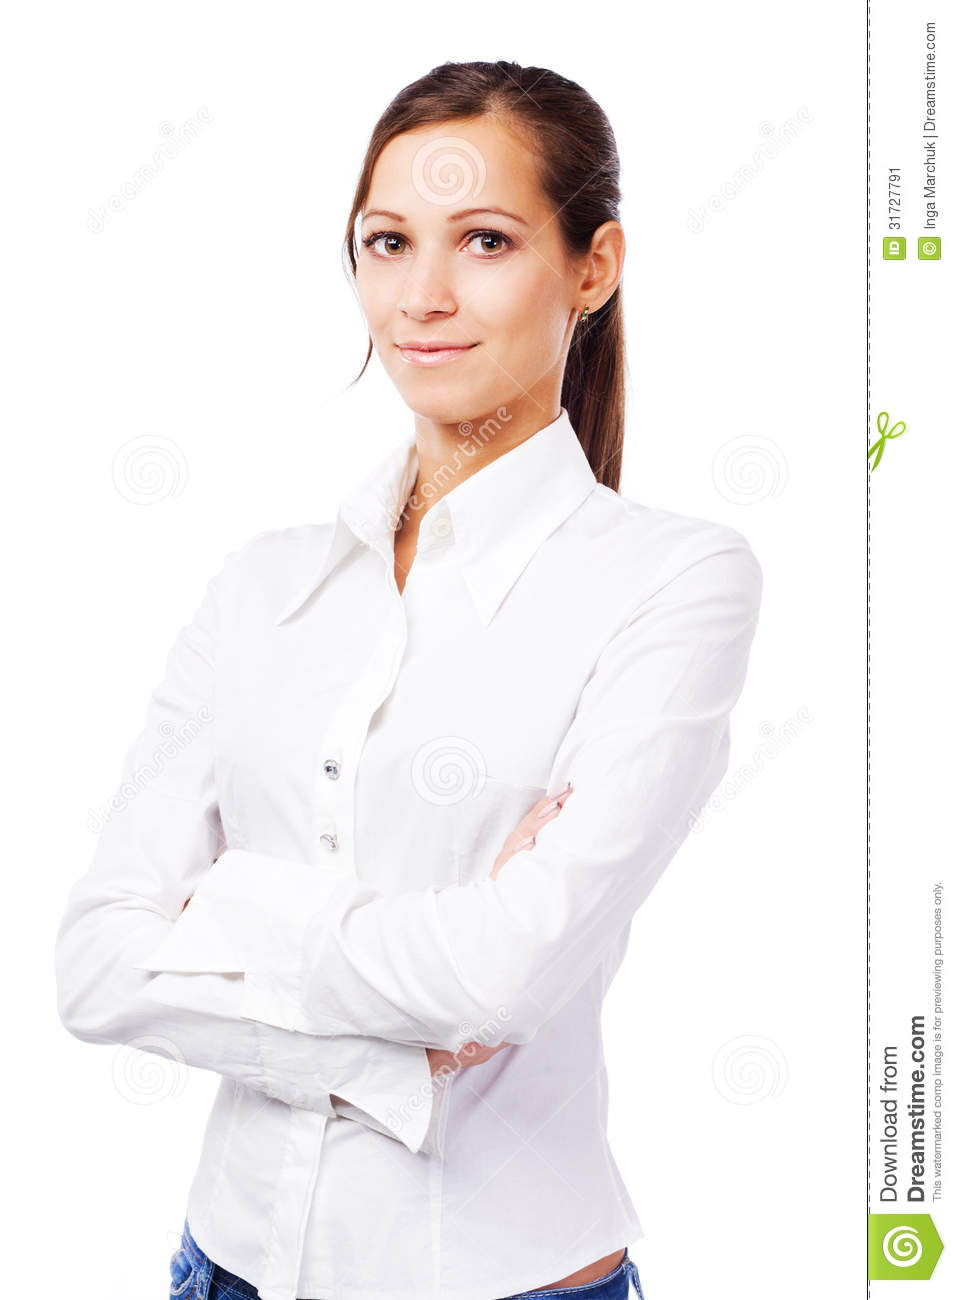 Lovely Woman In White Shirt Stock Image - Image: 31727791